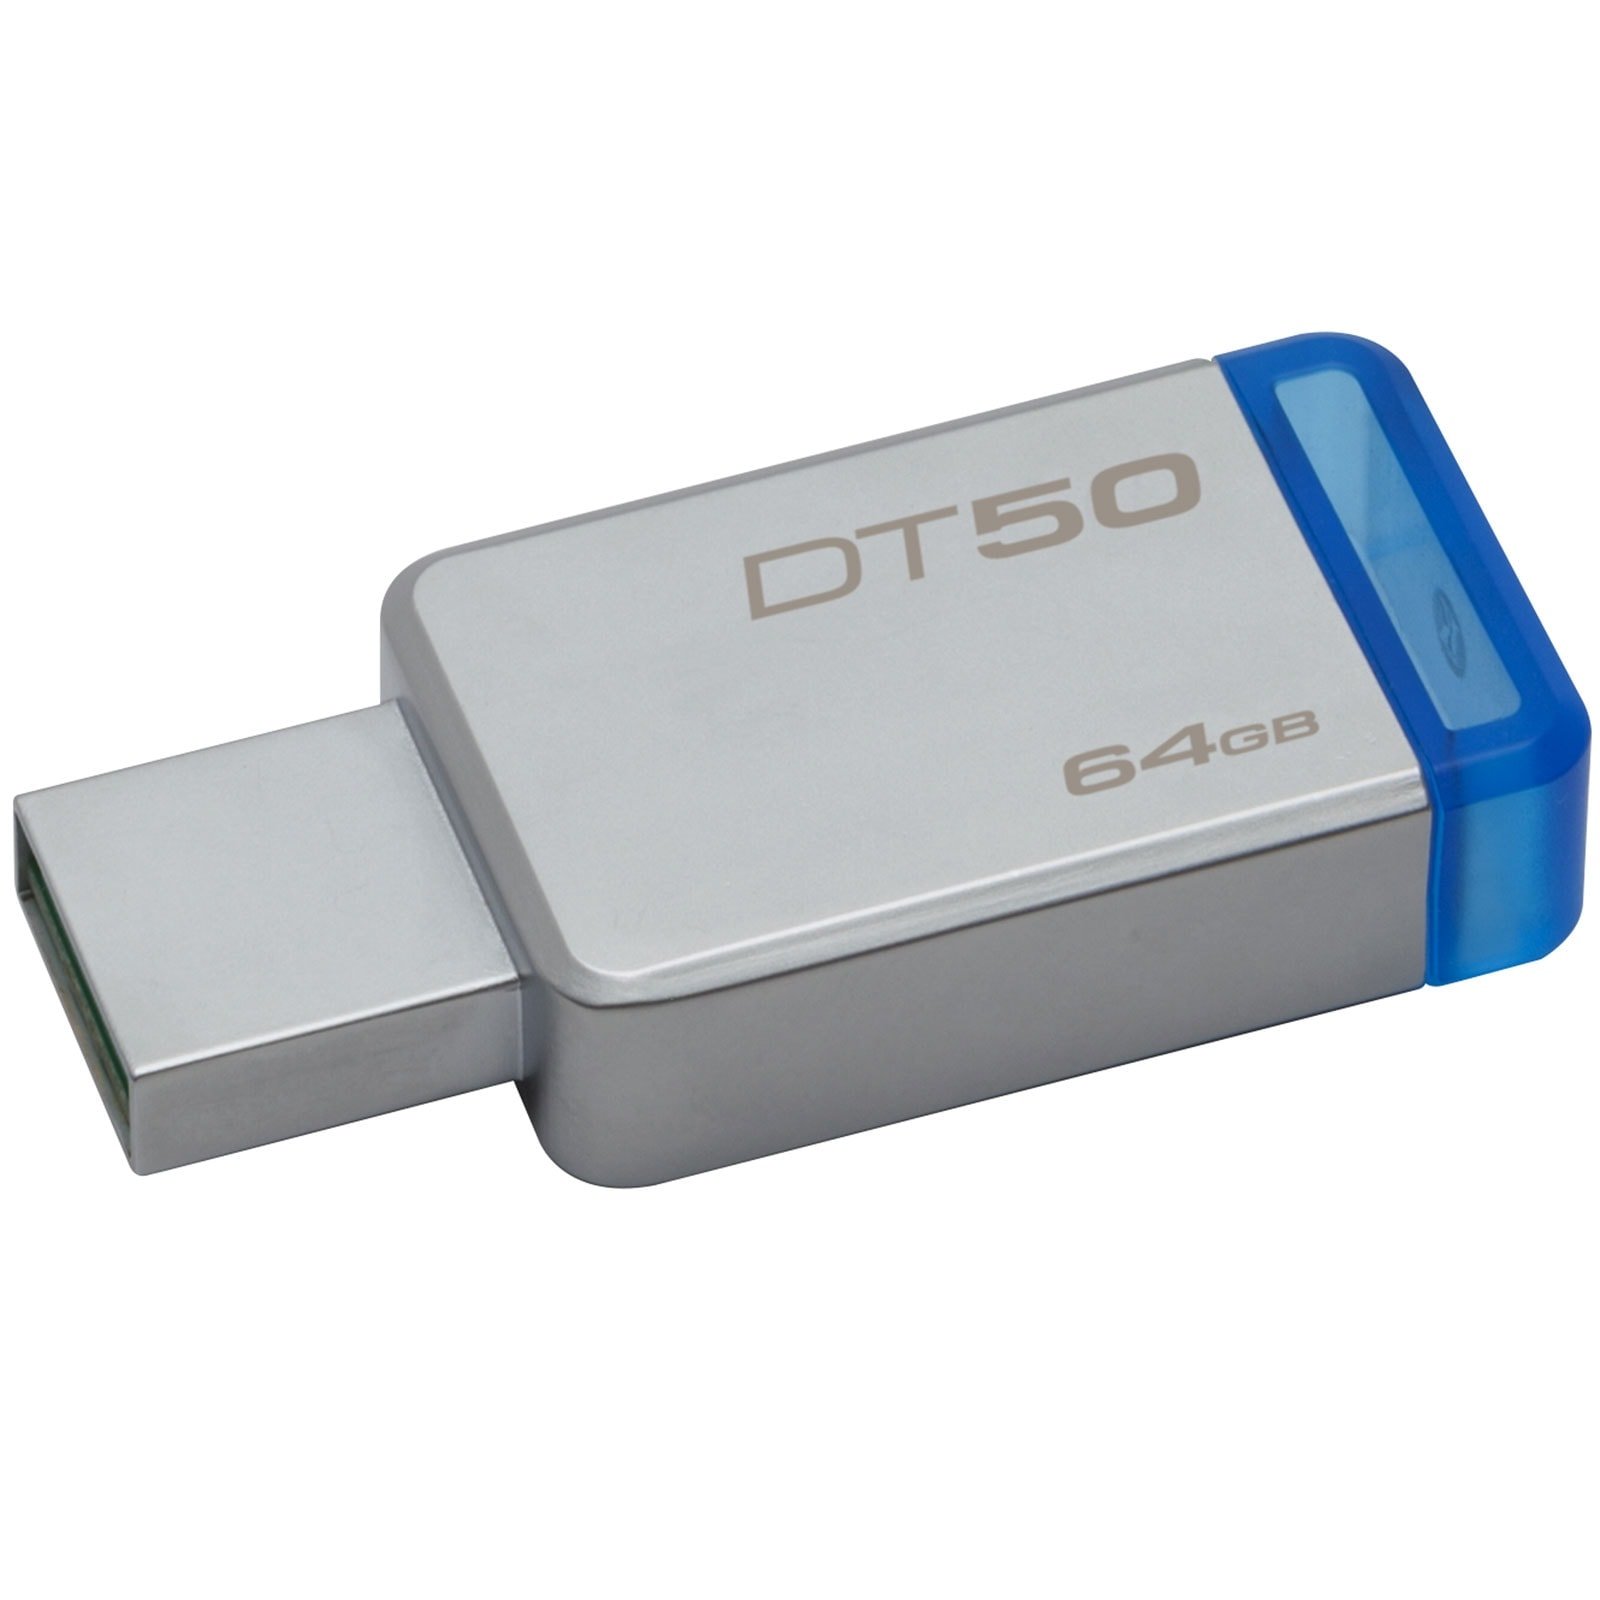 Kingston 64Go USB 3.1 - Clé USB Kingston - Cybertek.fr - 0